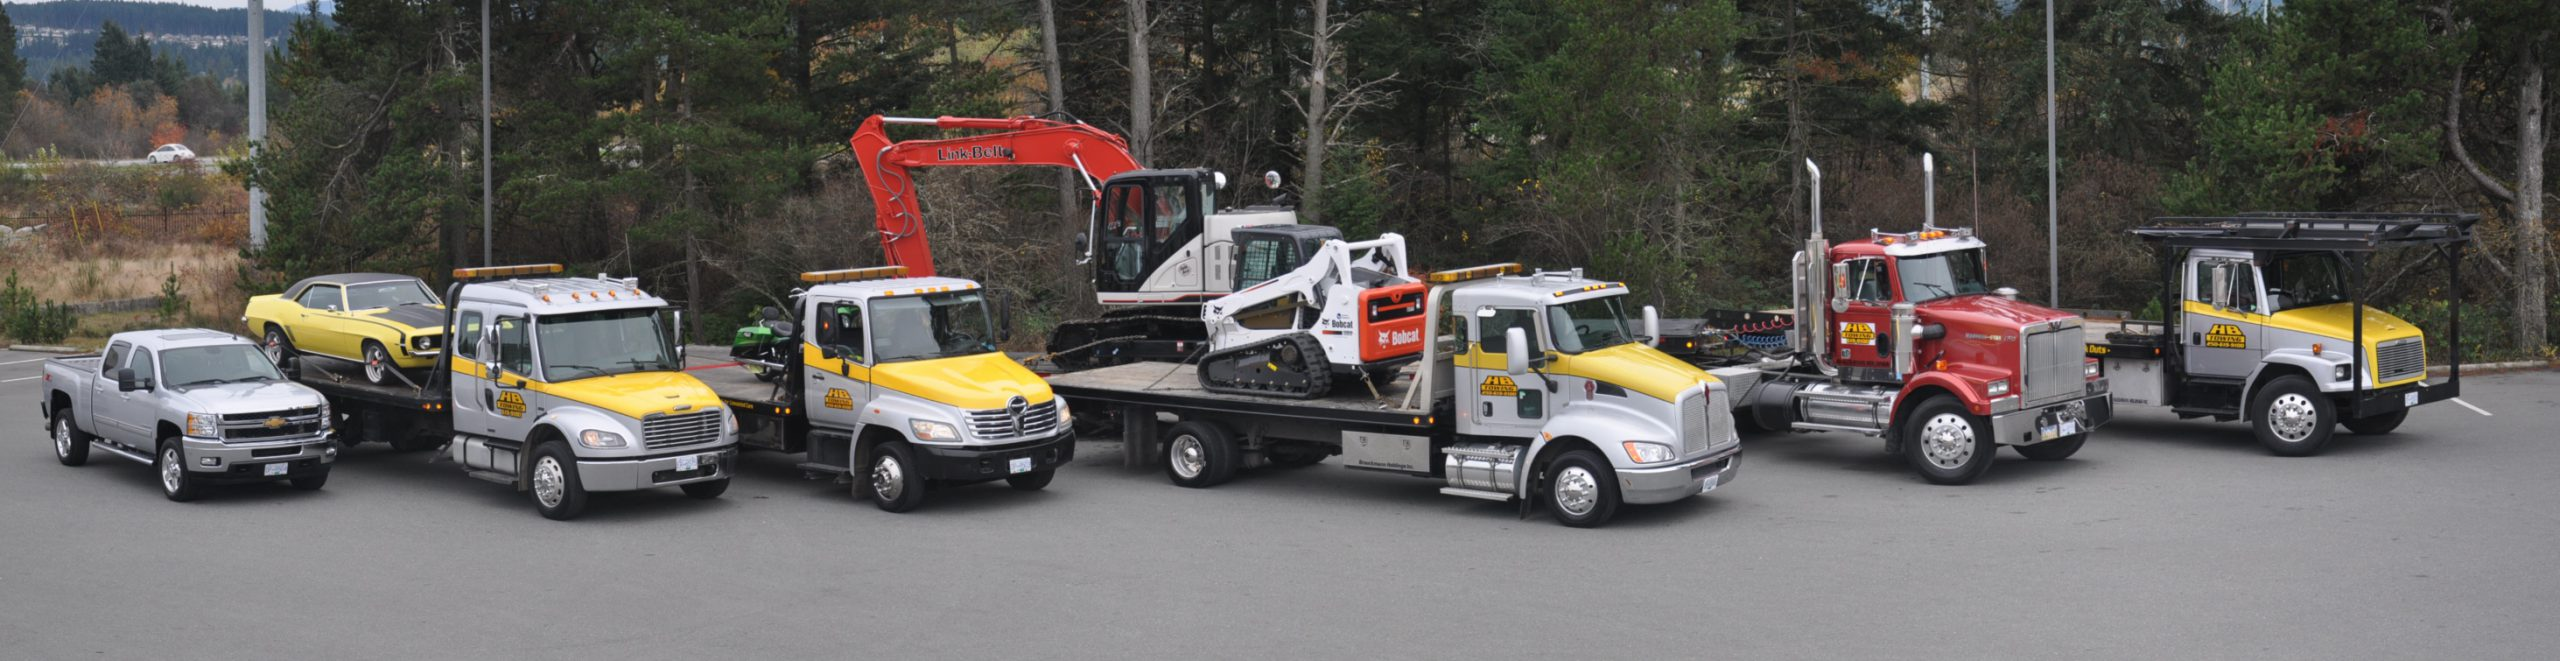 HB Towing fleet image. All Vehicles.